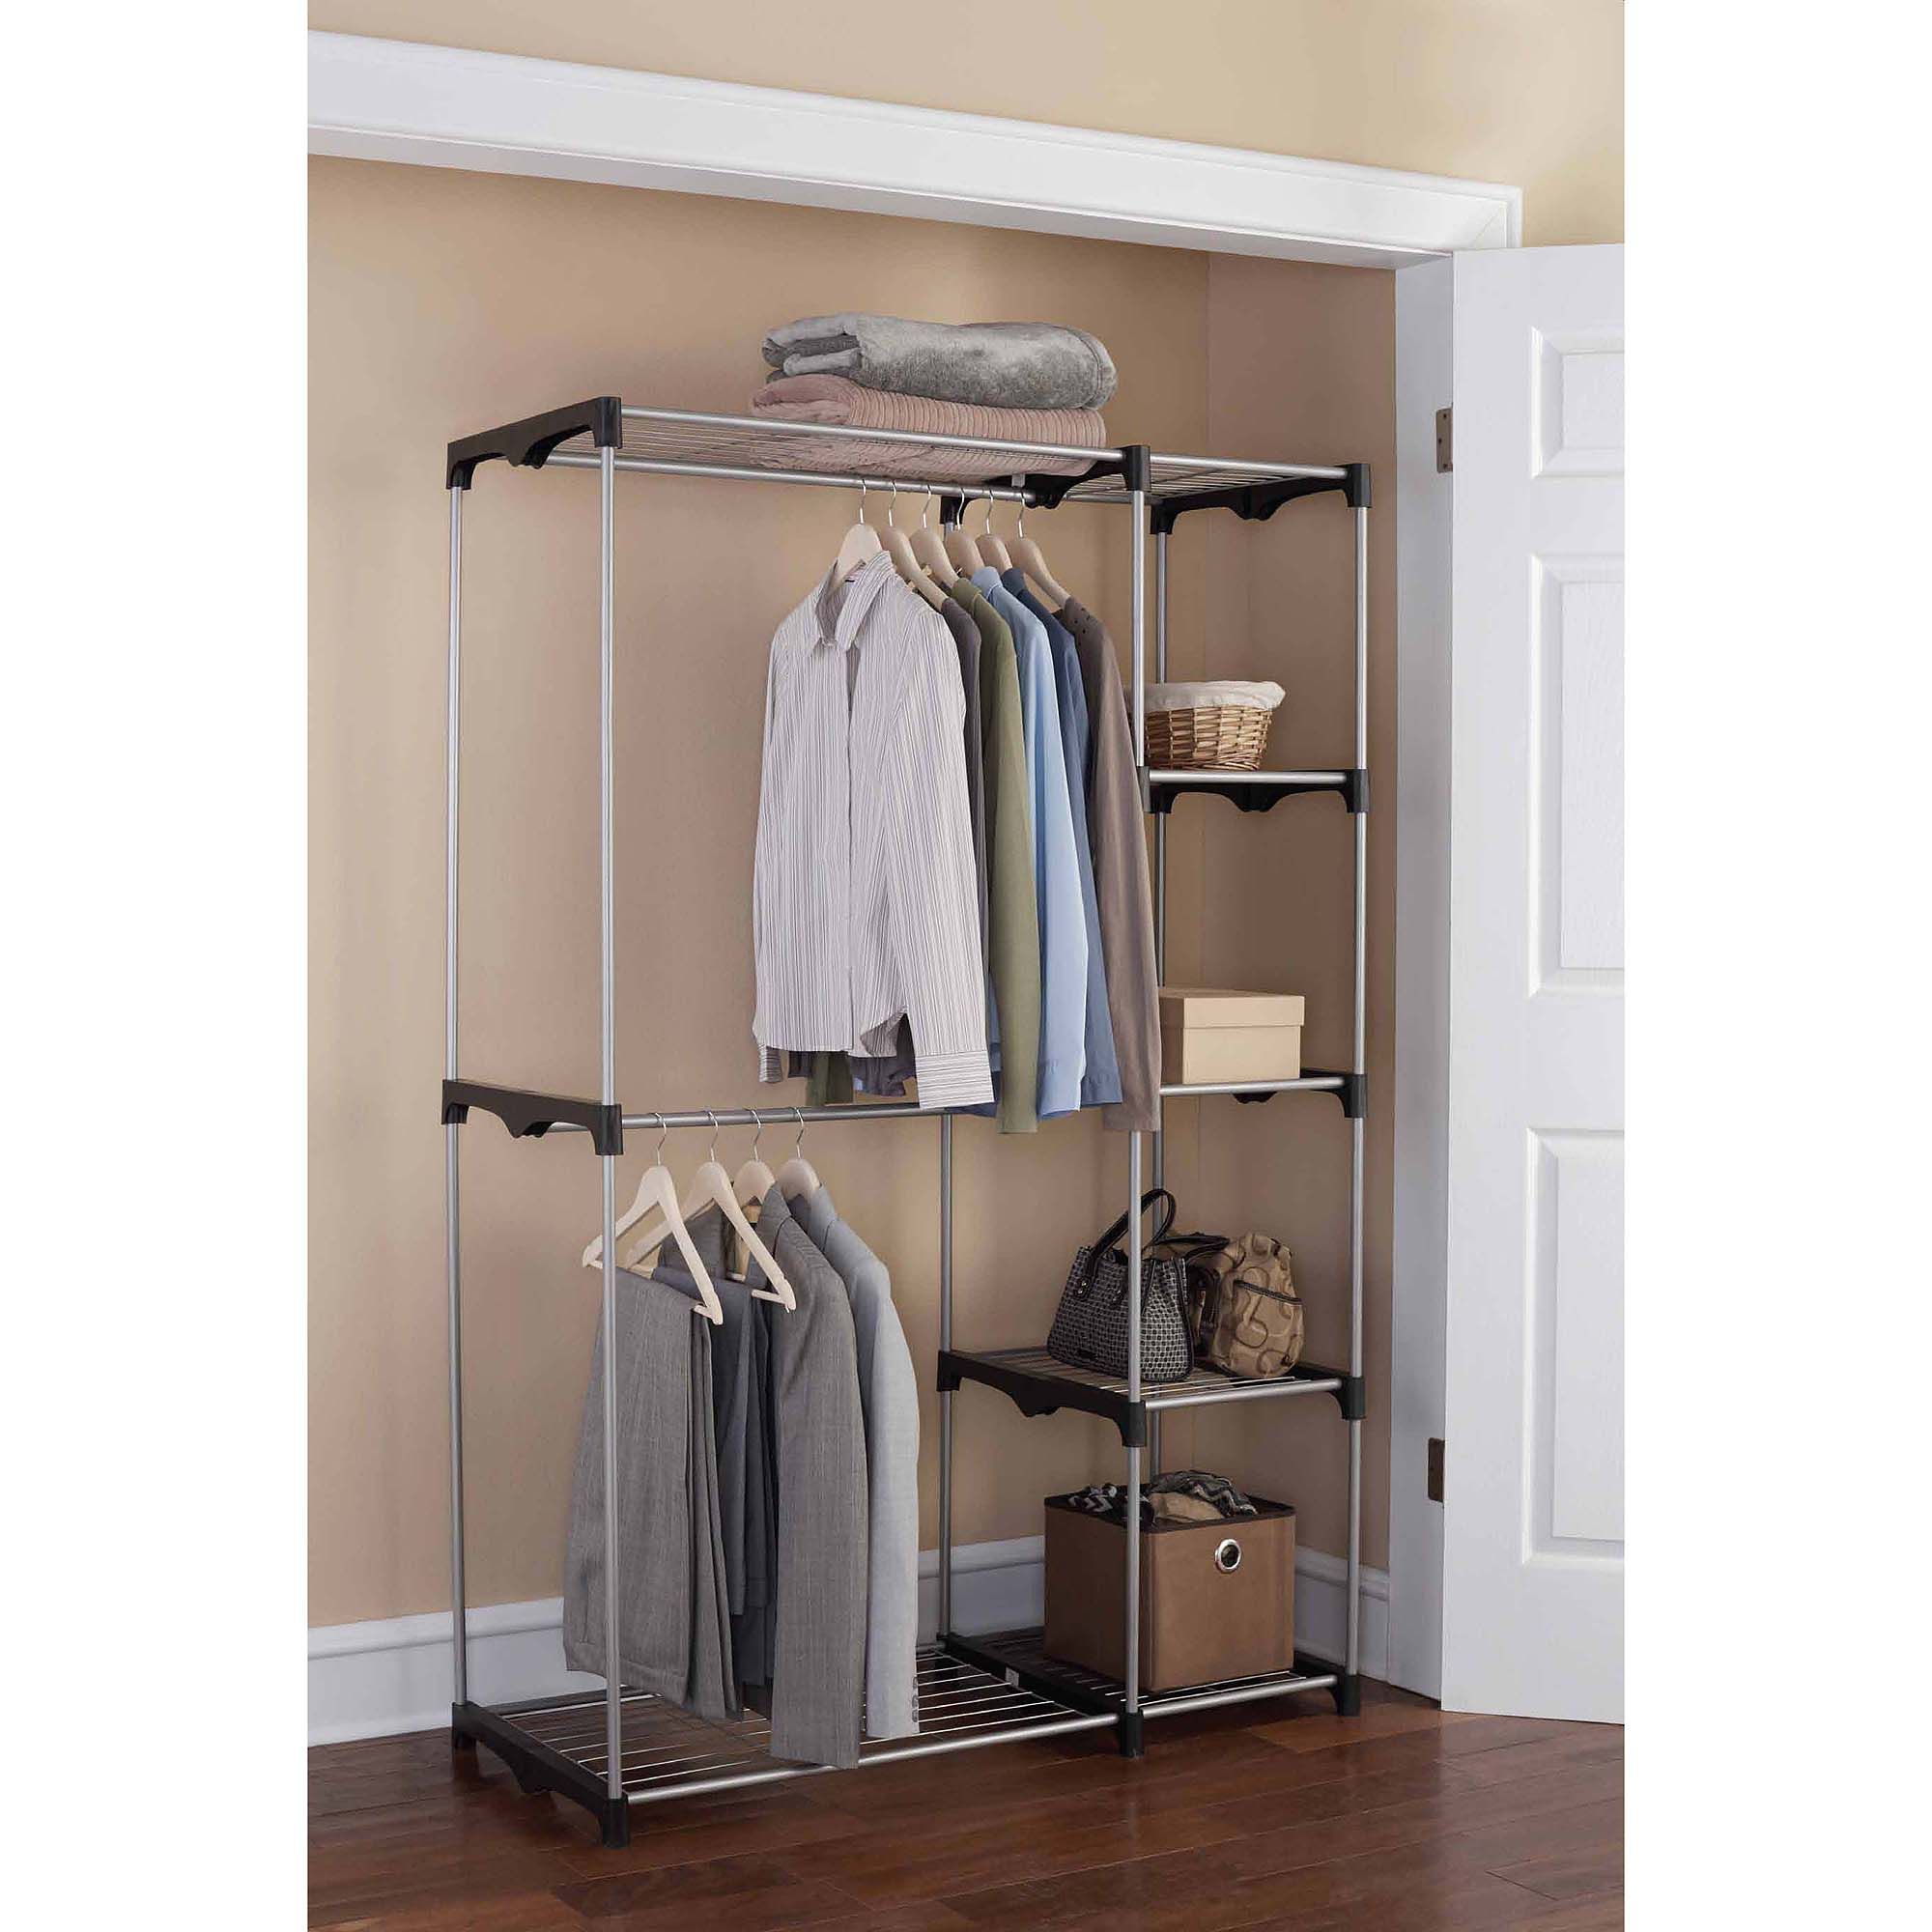 mainstays wire shelf closet organizer blacksilver - Linen Closet